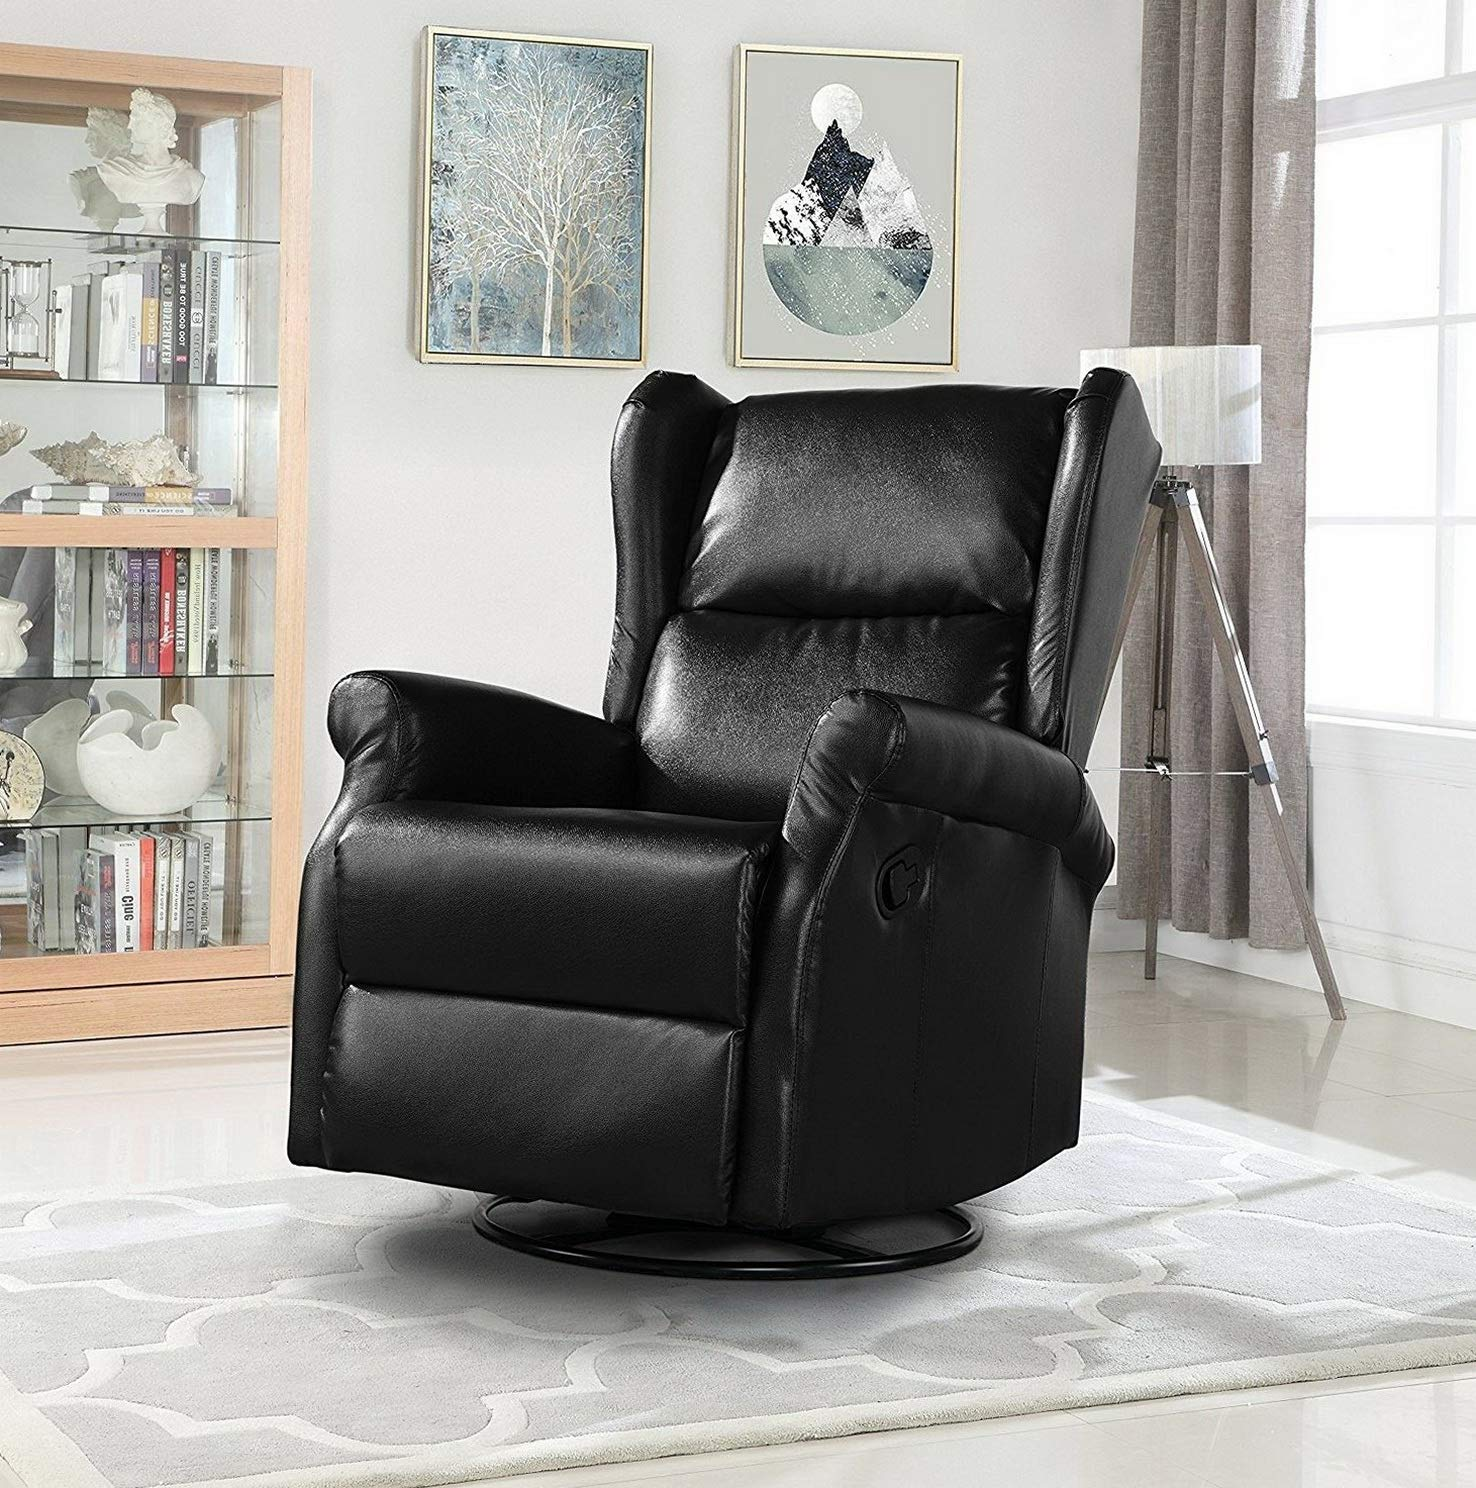 Pleasing Amazon Com Mikash Reclining Swivel Accent Chair For Living Ncnpc Chair Design For Home Ncnpcorg